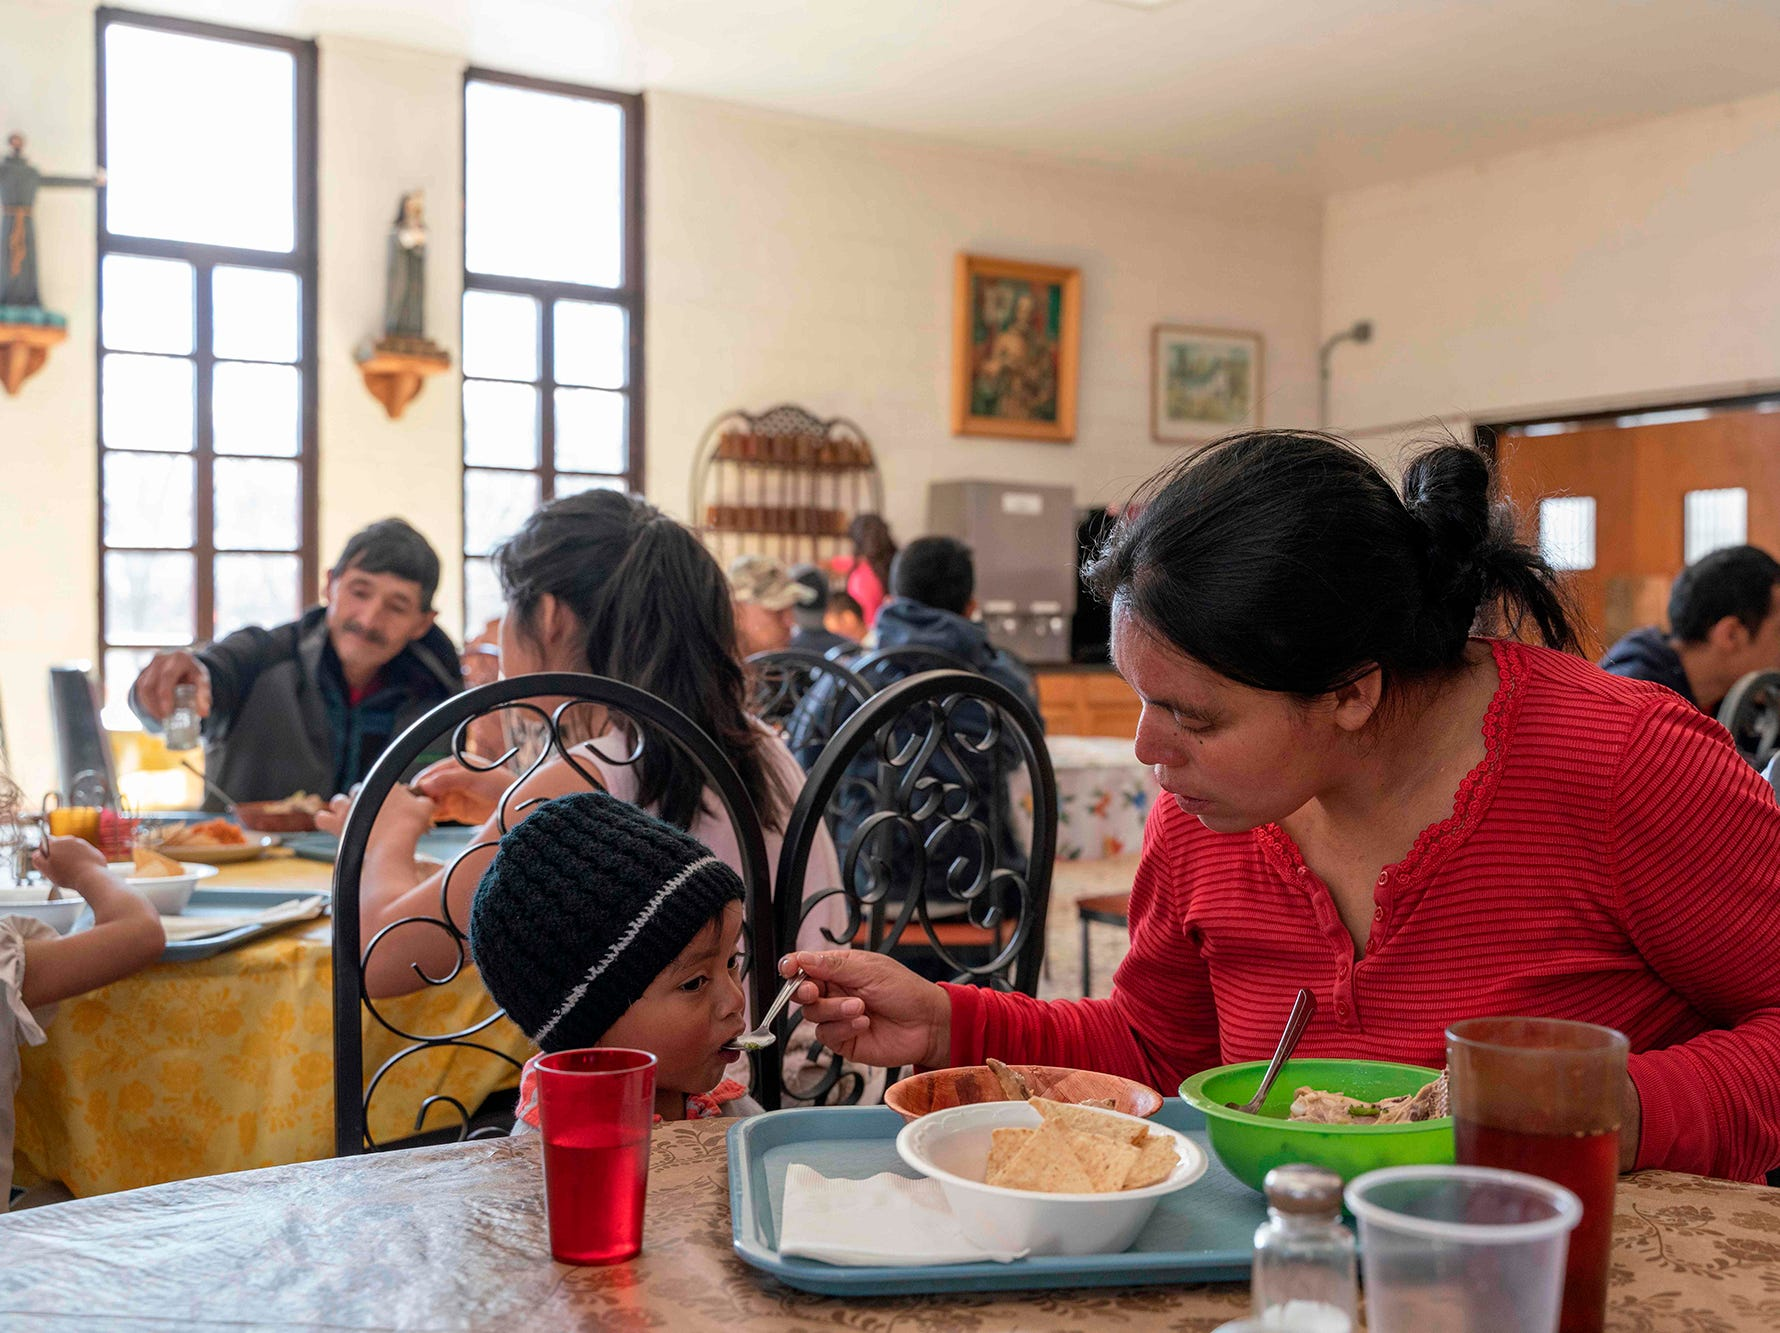 Magdelena, a Guatemalan migrant, feeds her toddler son at Holy Cross Retreat Center, which has become a makeshift shelter for migrants released by Immigration and Customs Enforcement (ICE), in Las Cruces, New Mexico, on Dec. 27, 2018. She was part of a group of 1,300 people unexpectedly released by ICE over the Christmas holidays. Shelters in El Paso, inundated with migrants, have coordinated with Las Cruces Shelters to house migrants the day they are released from ICE custody.